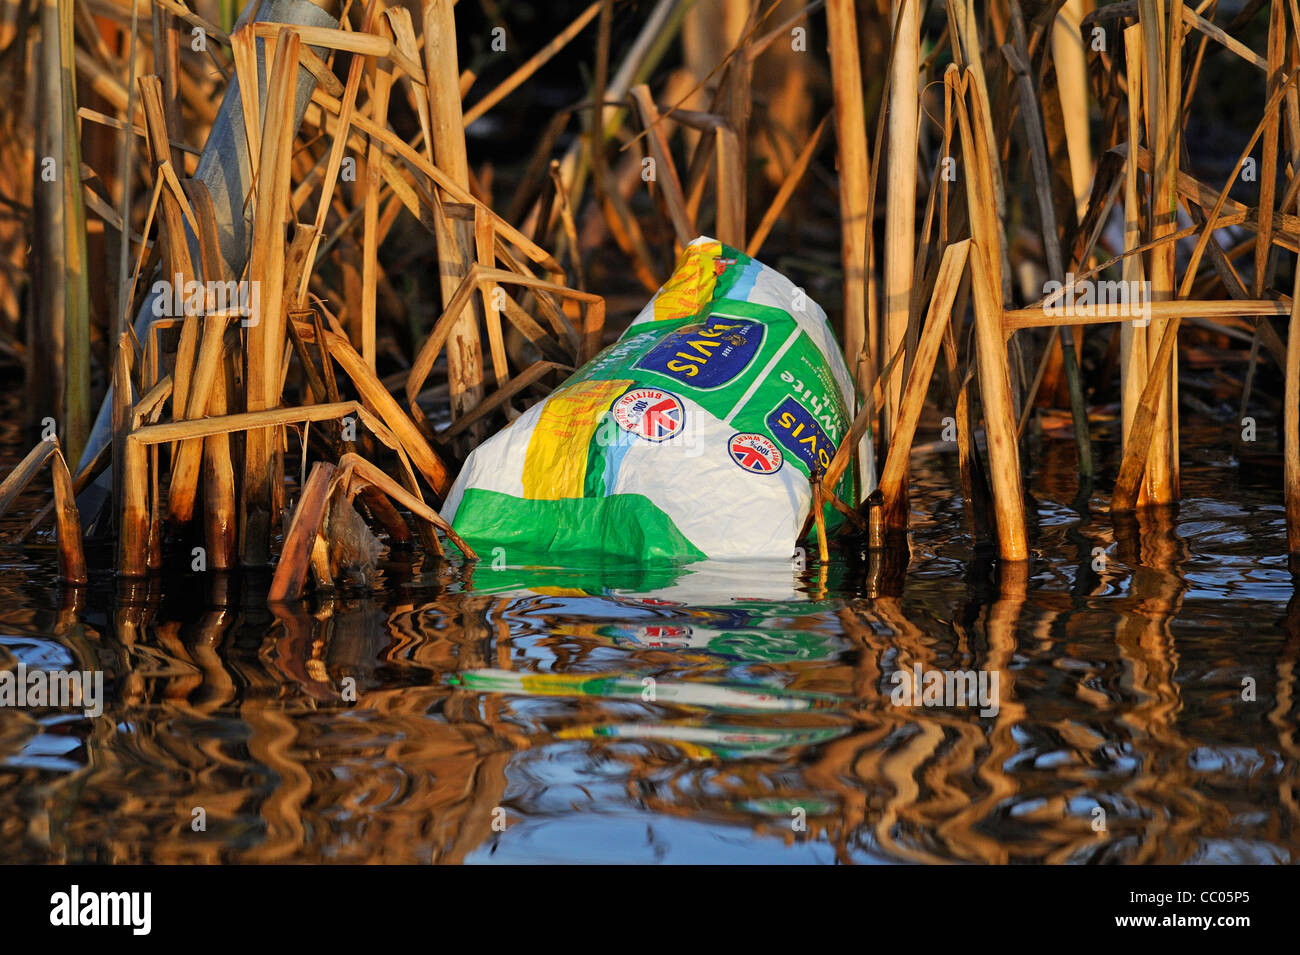 A discard empty plastic bread bag caught in some reeds at the side of a lake.   . - Stock Image